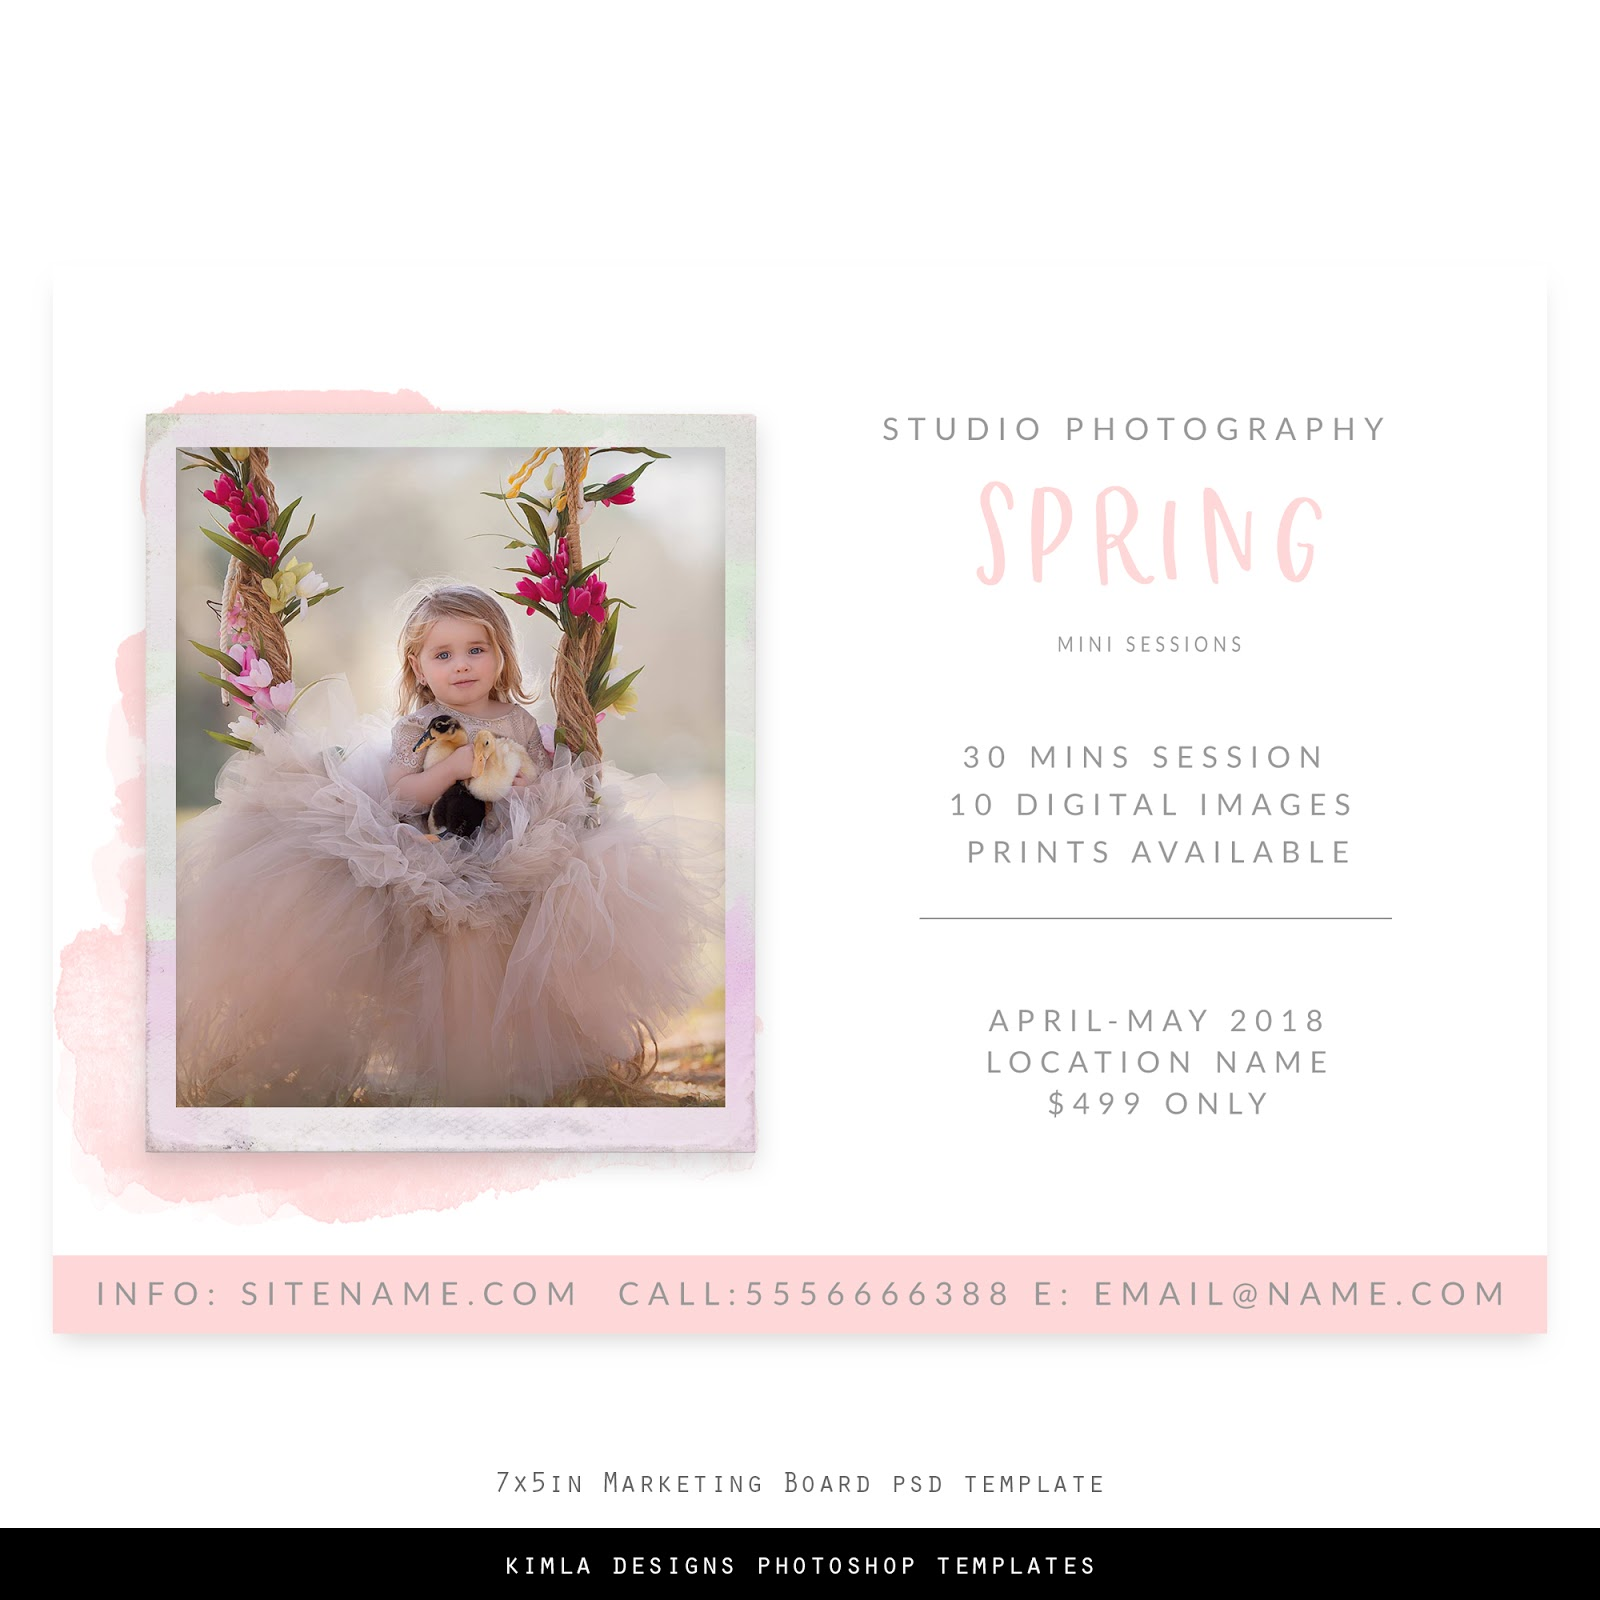 Spring Mini Session Free Marketing Board Template for Photographers